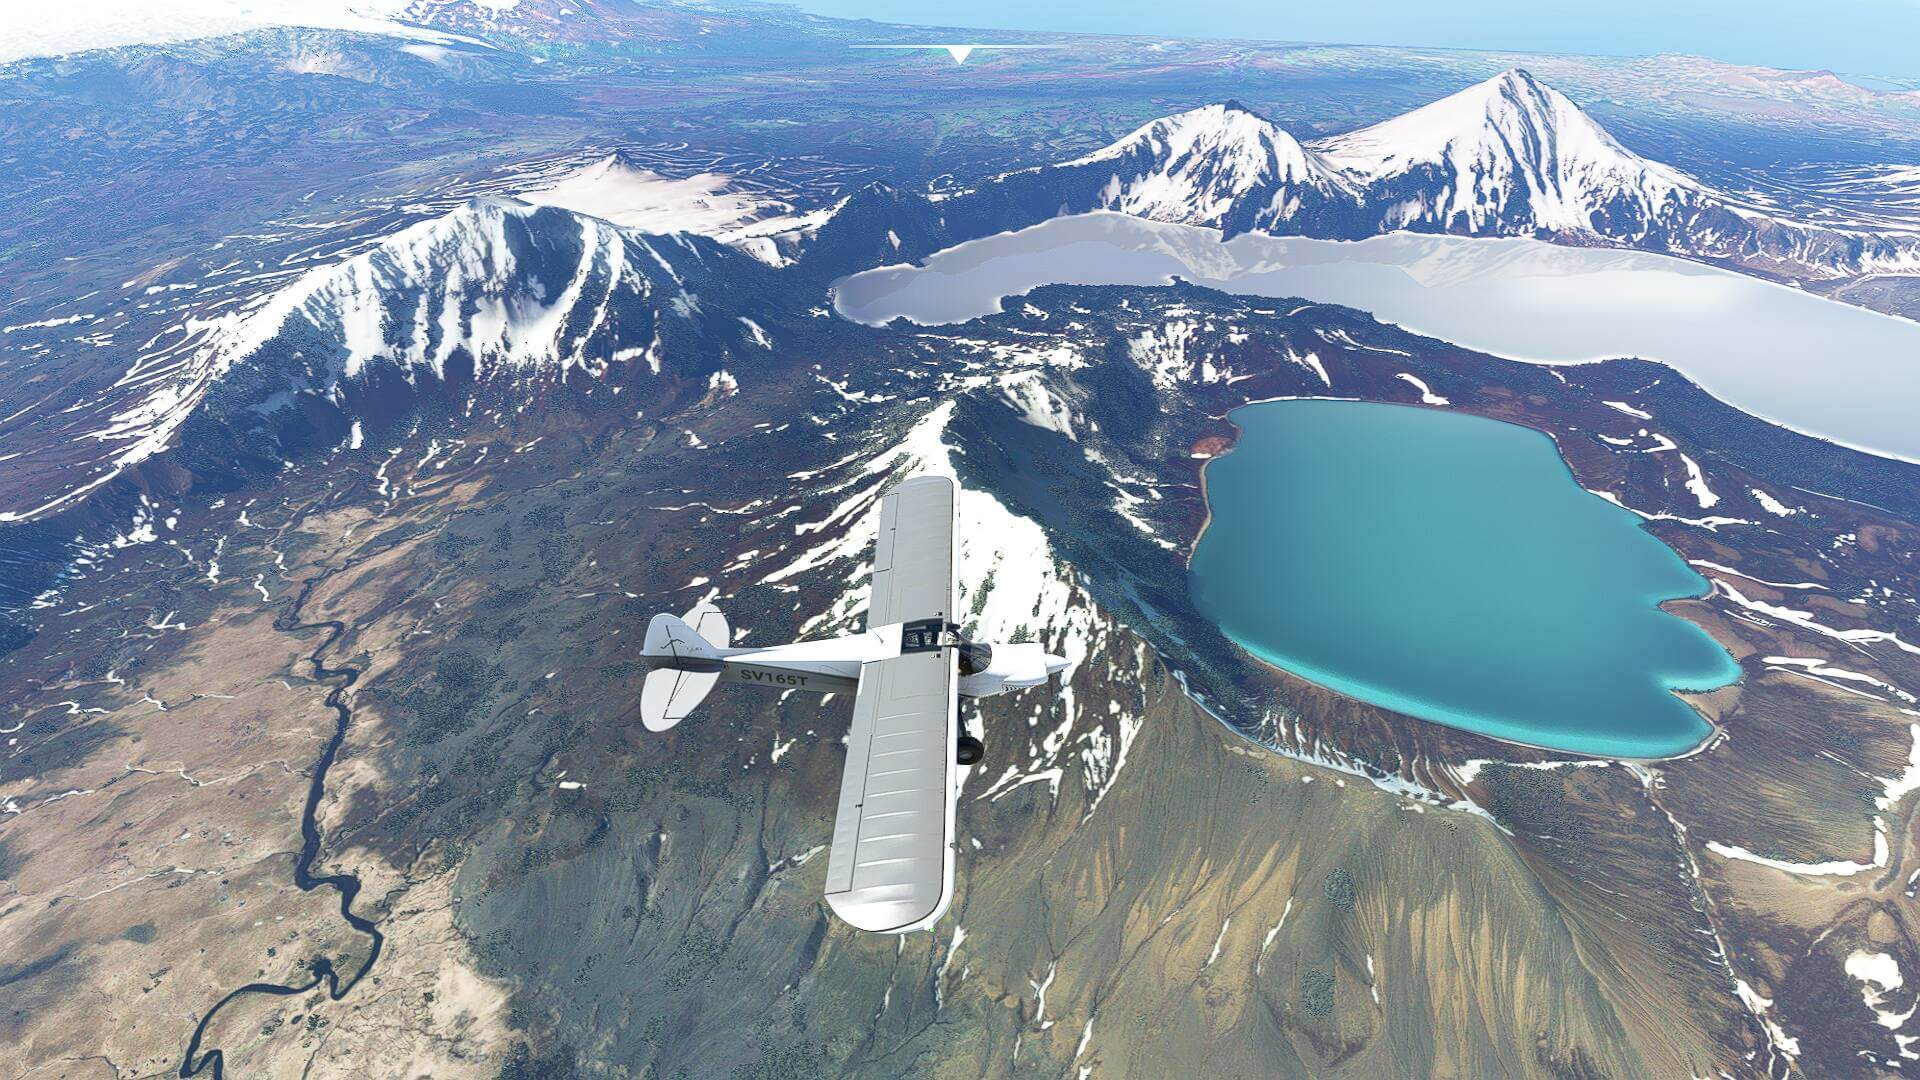 Plane flying over a blue lake in the snowy mountains